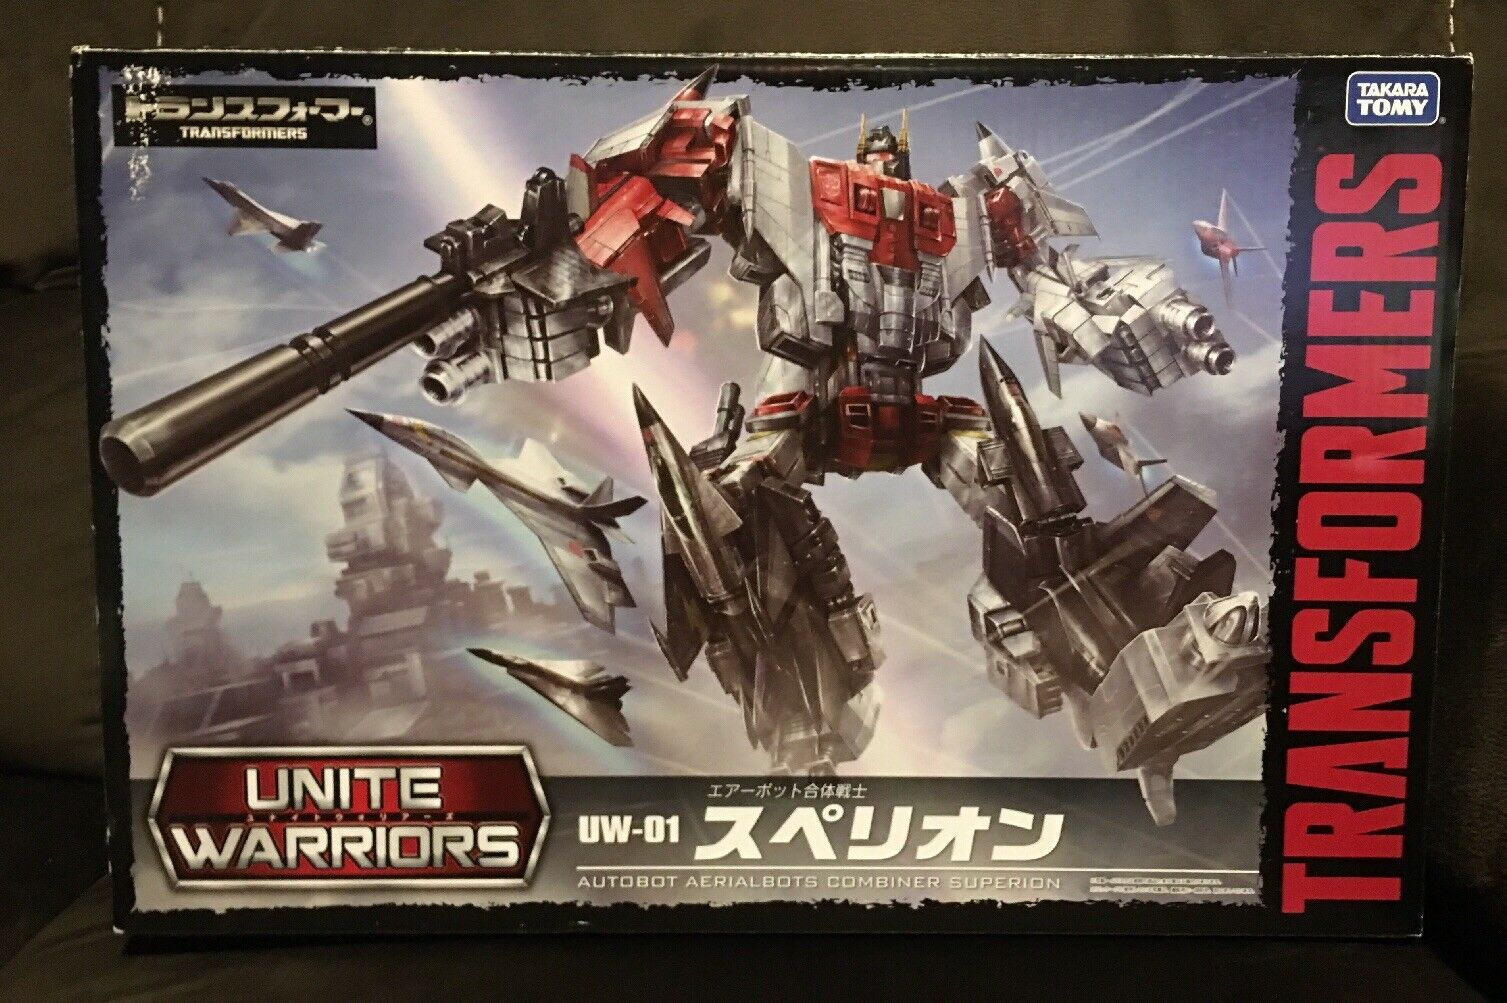 japanESE AUTHENTIC transformers UW01 SUPERION ENITE WARIORS 01 4904810831686